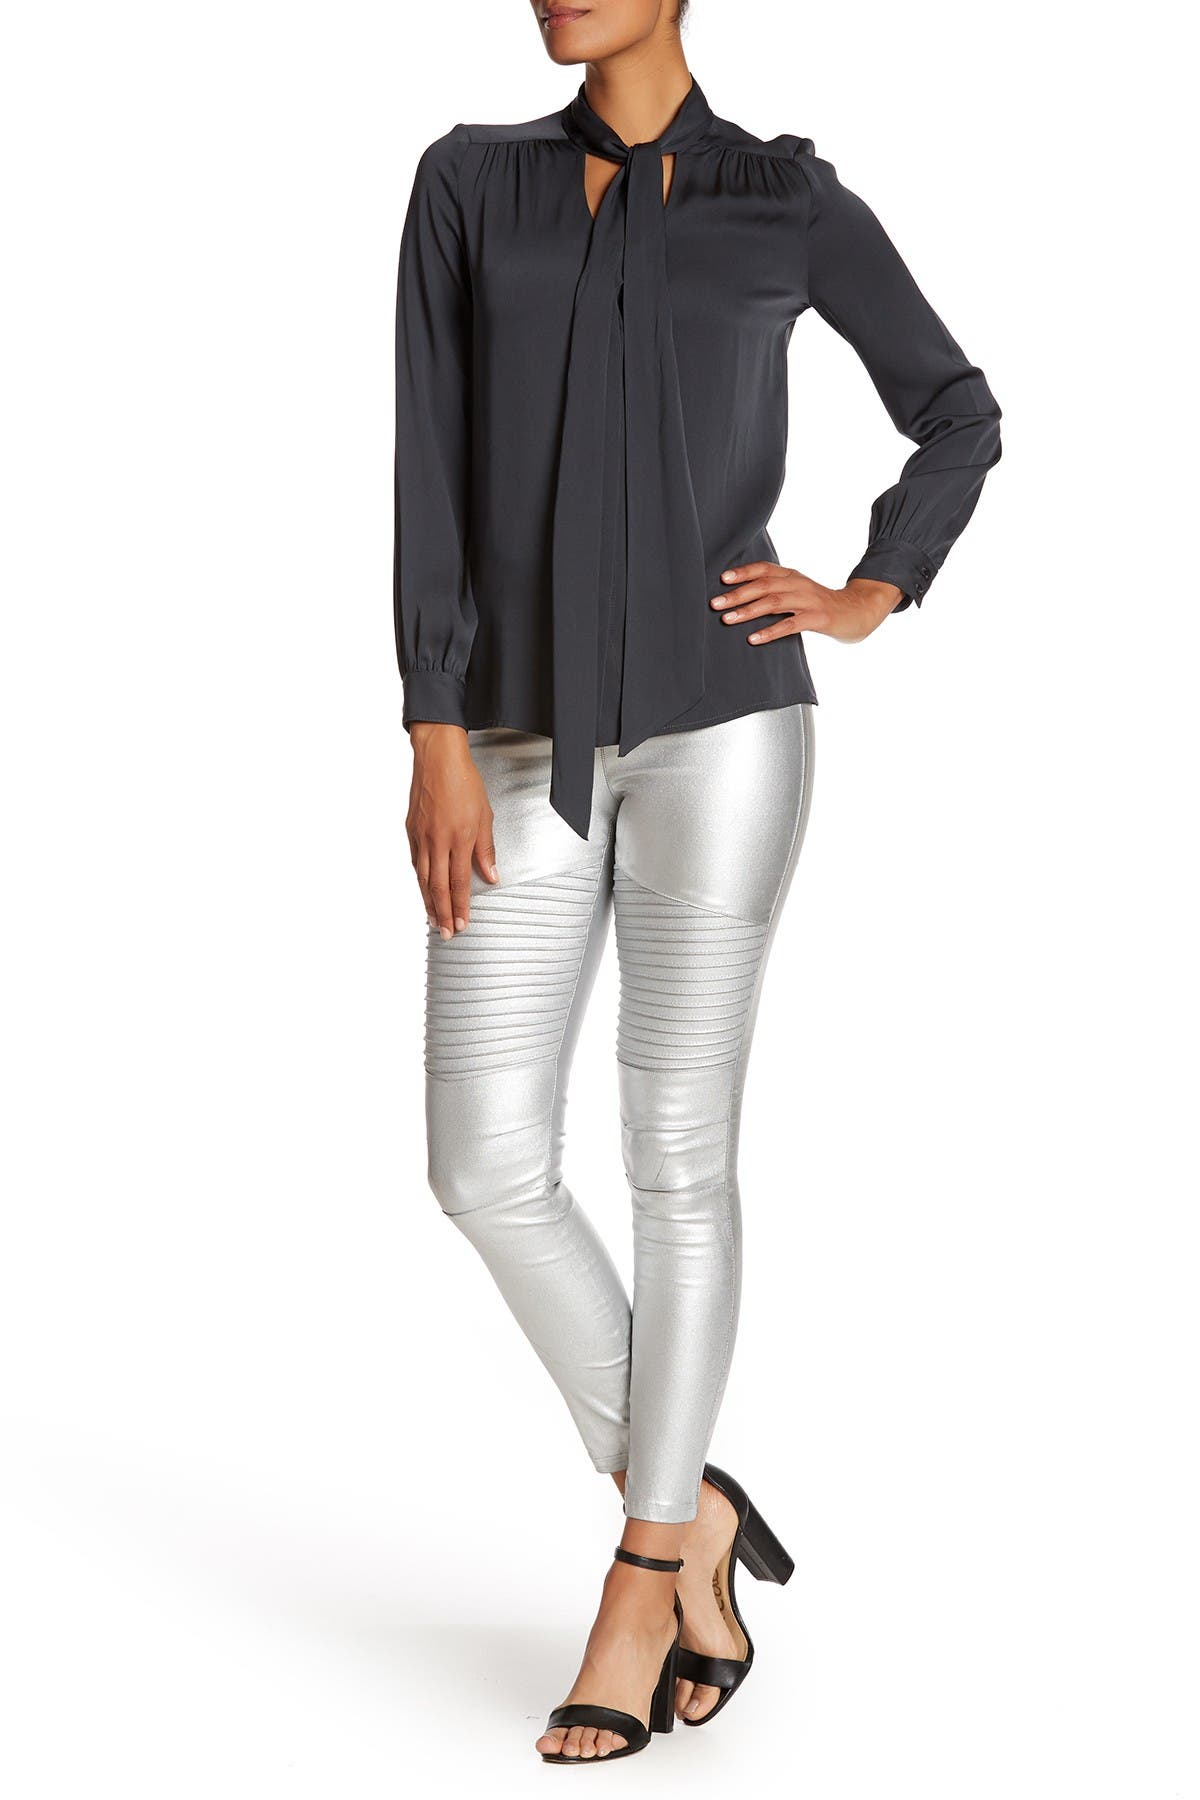 Image of OOBERSWANK Coated High Waisted Moto Leggings